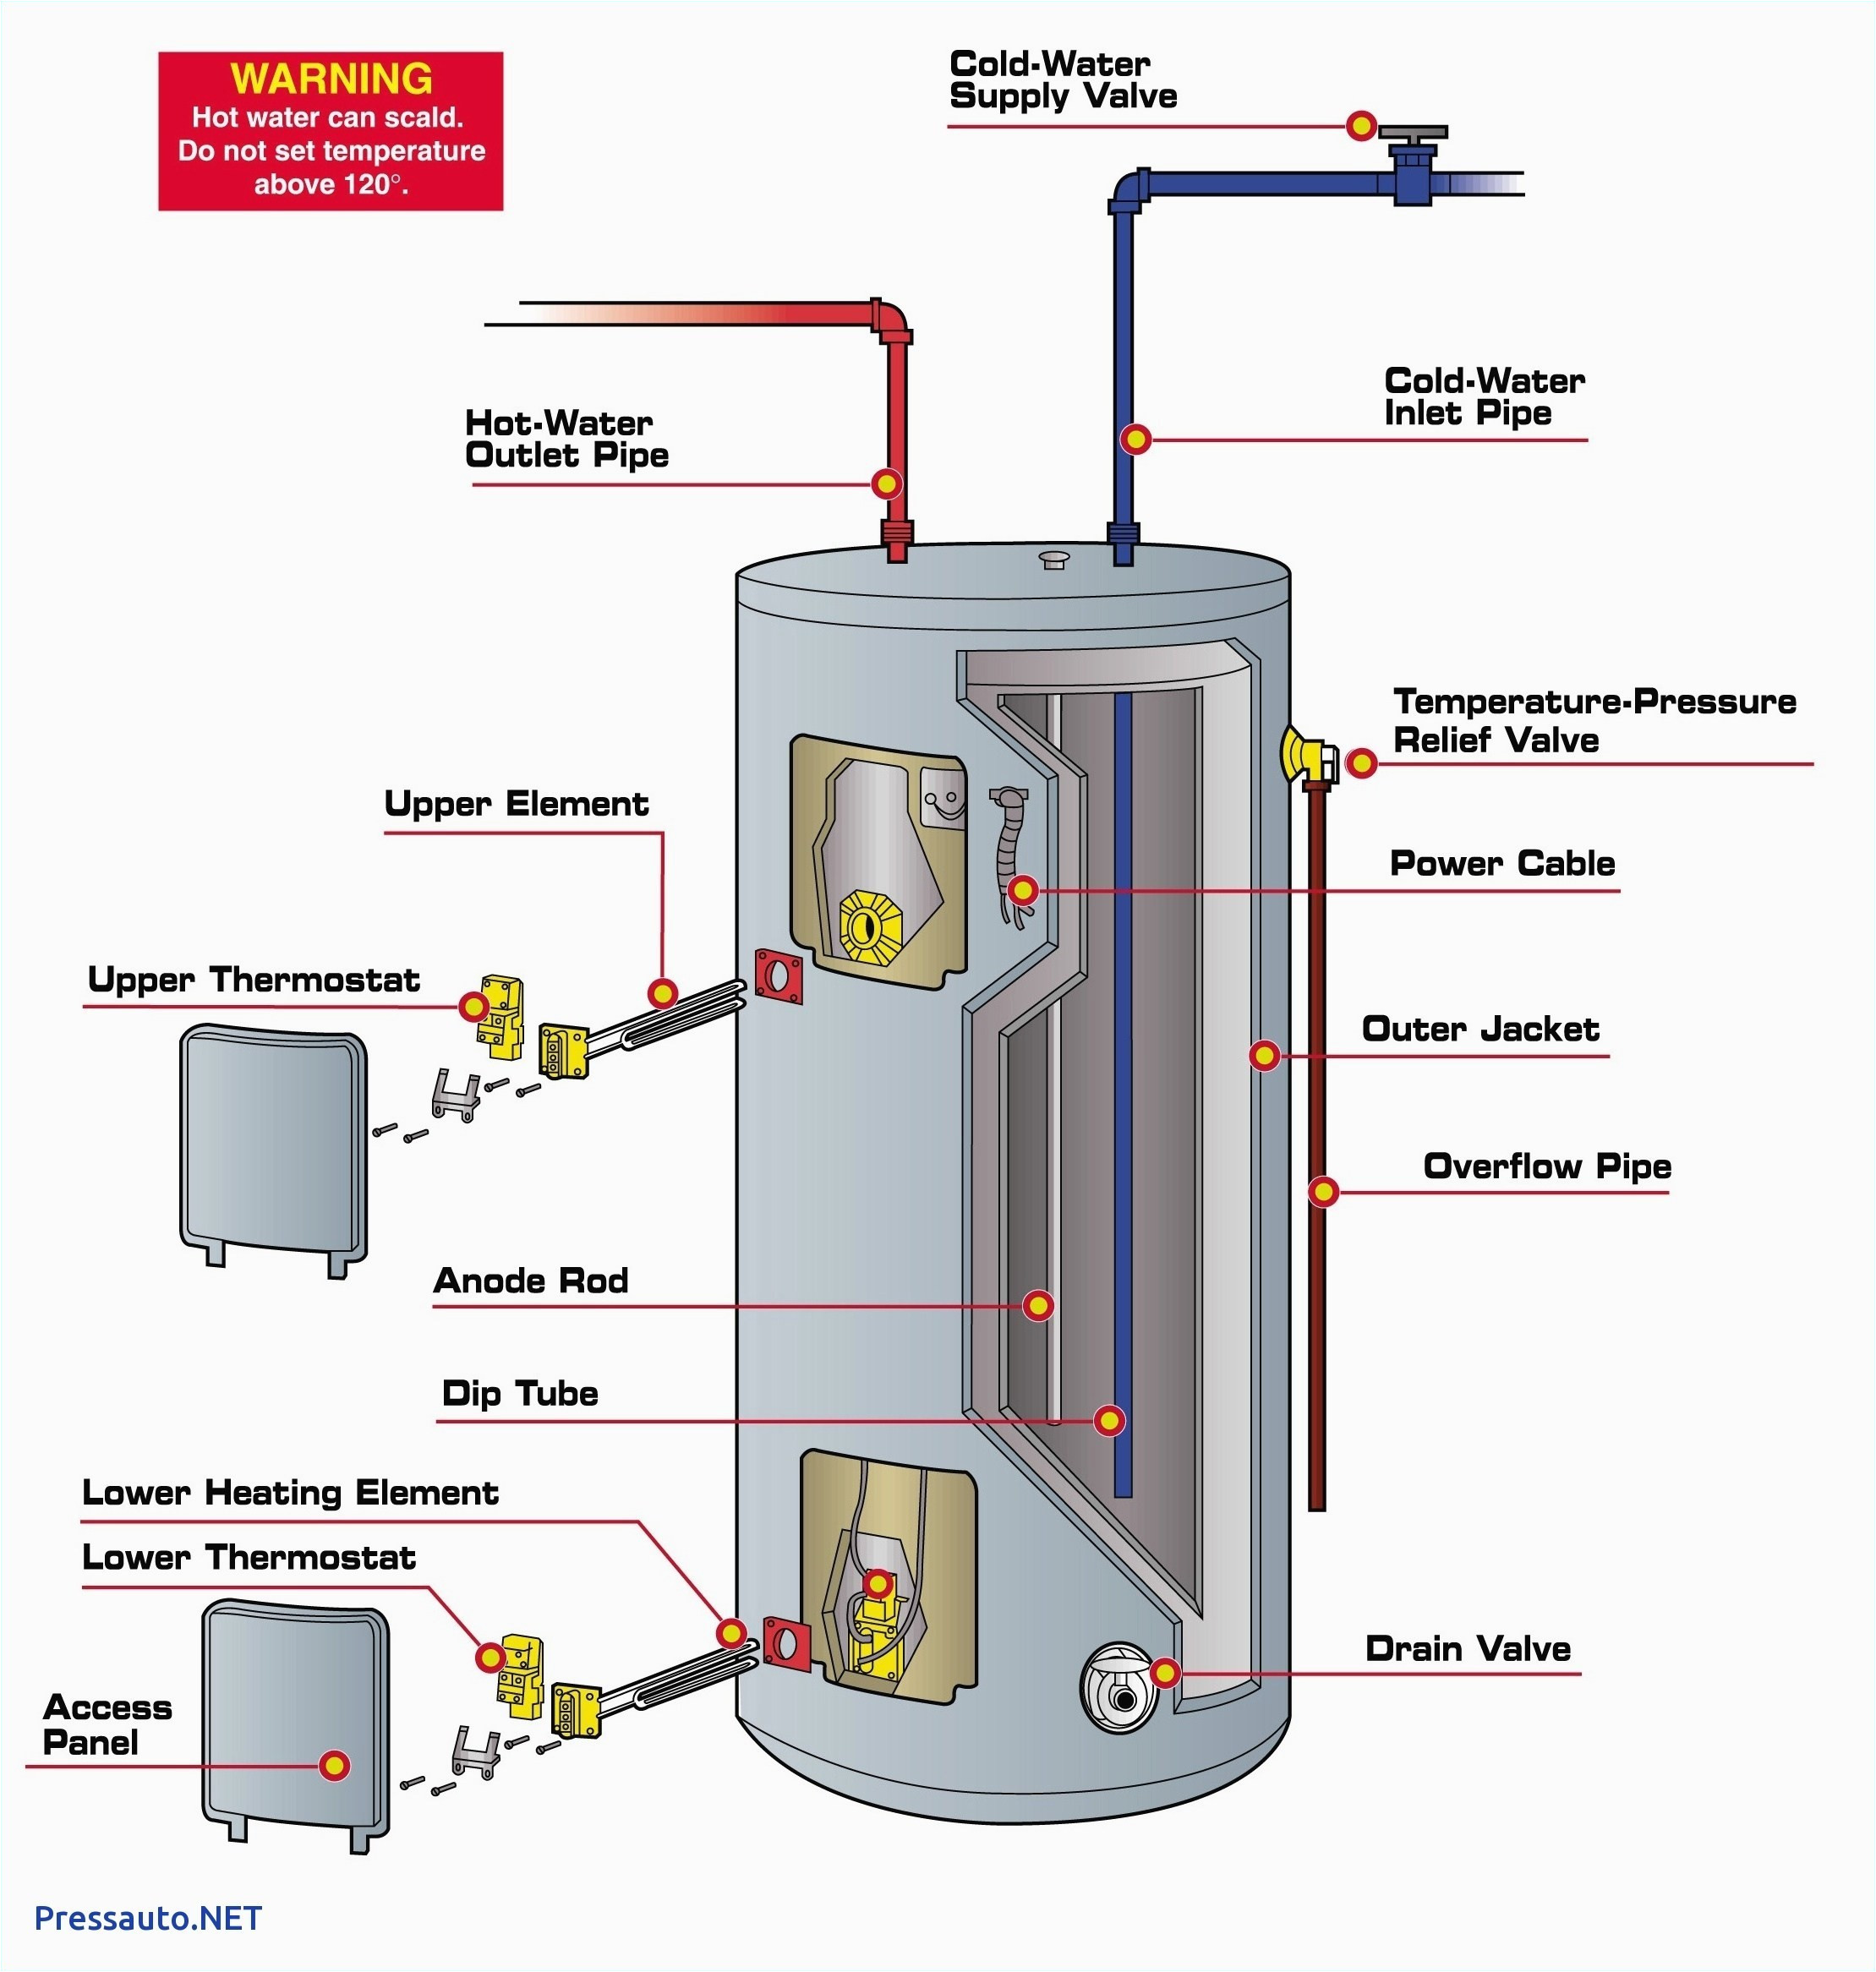 water heater schematic wiring diagrams hubs Electric Water Heater Schematic wiring diagram for whirlpool electric water heater today wiring water heater illustration rheem water heater wiring